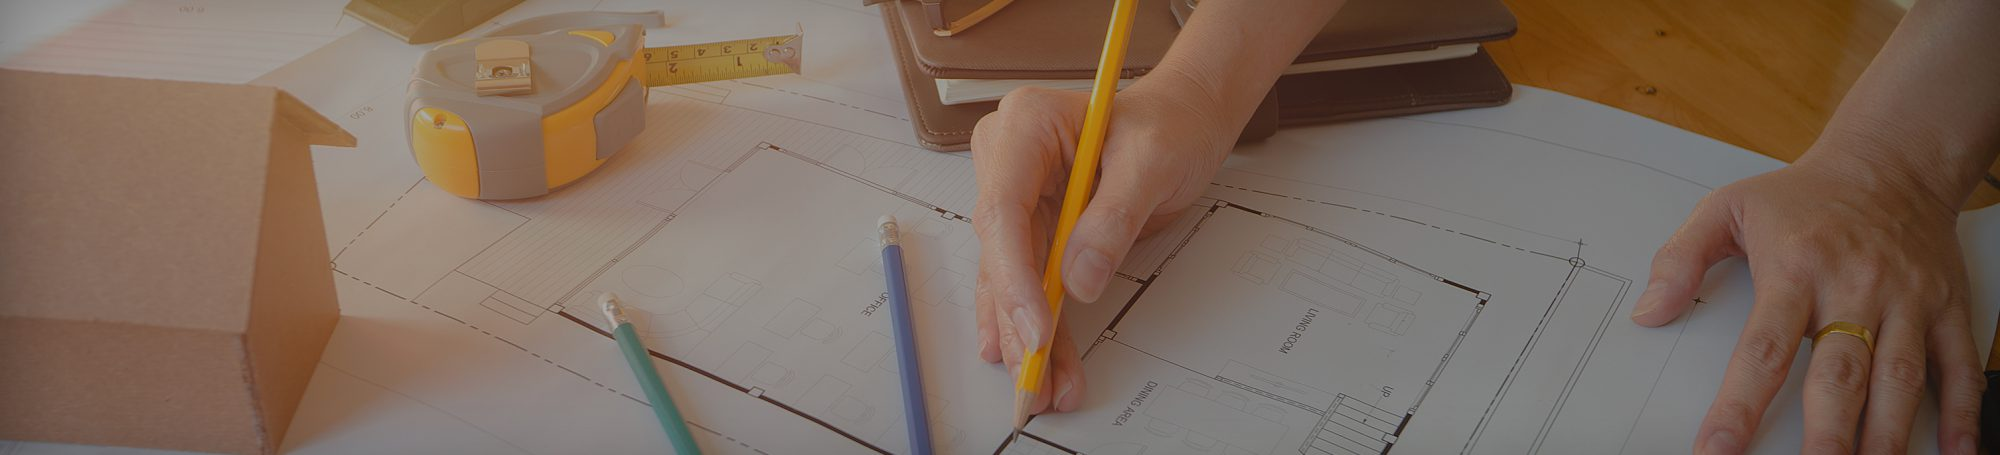 Planning A Cabinetry Project